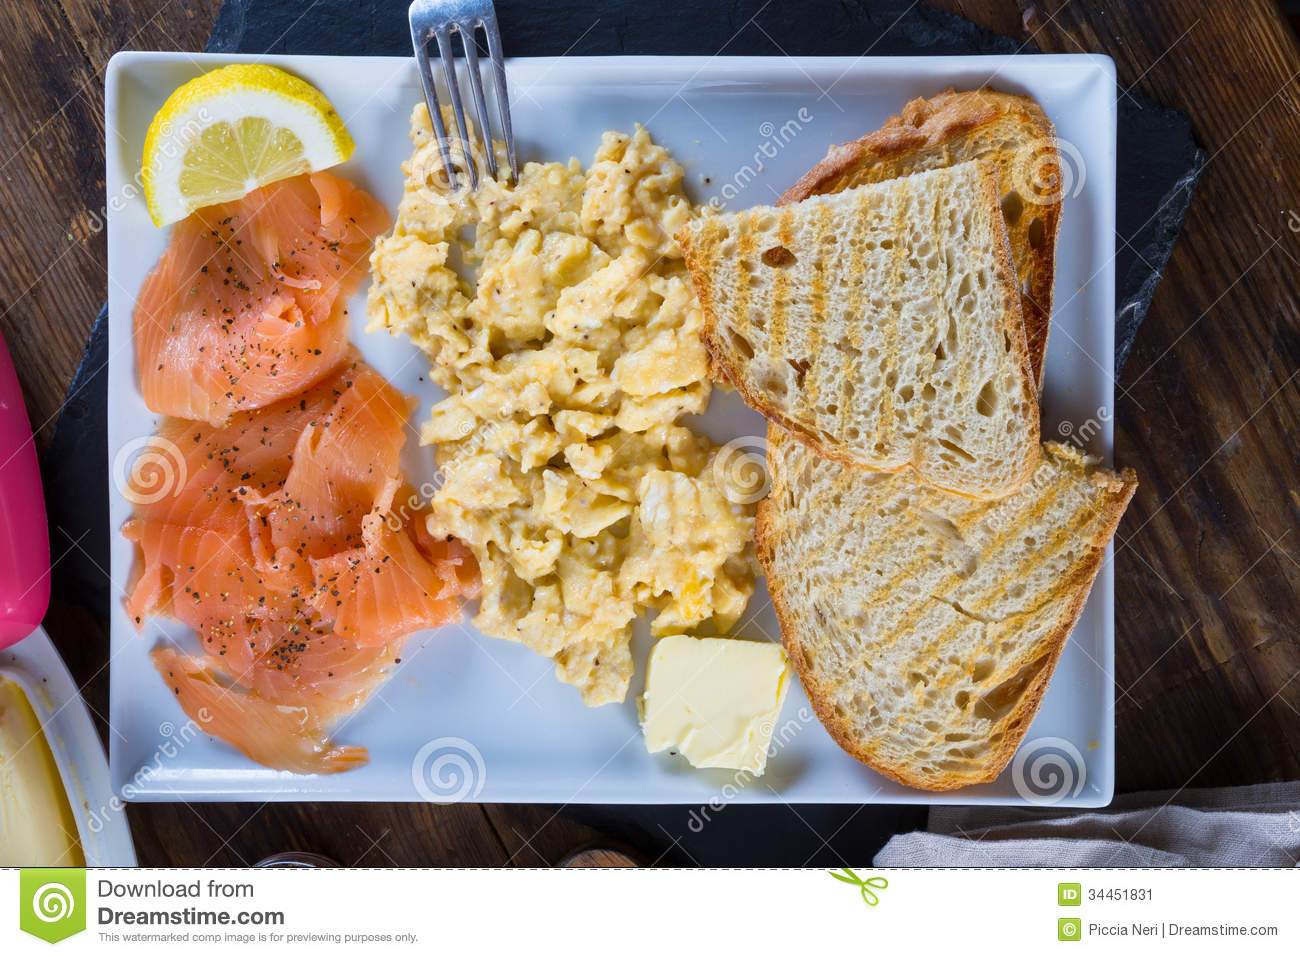 how to cook salmon for breakfast